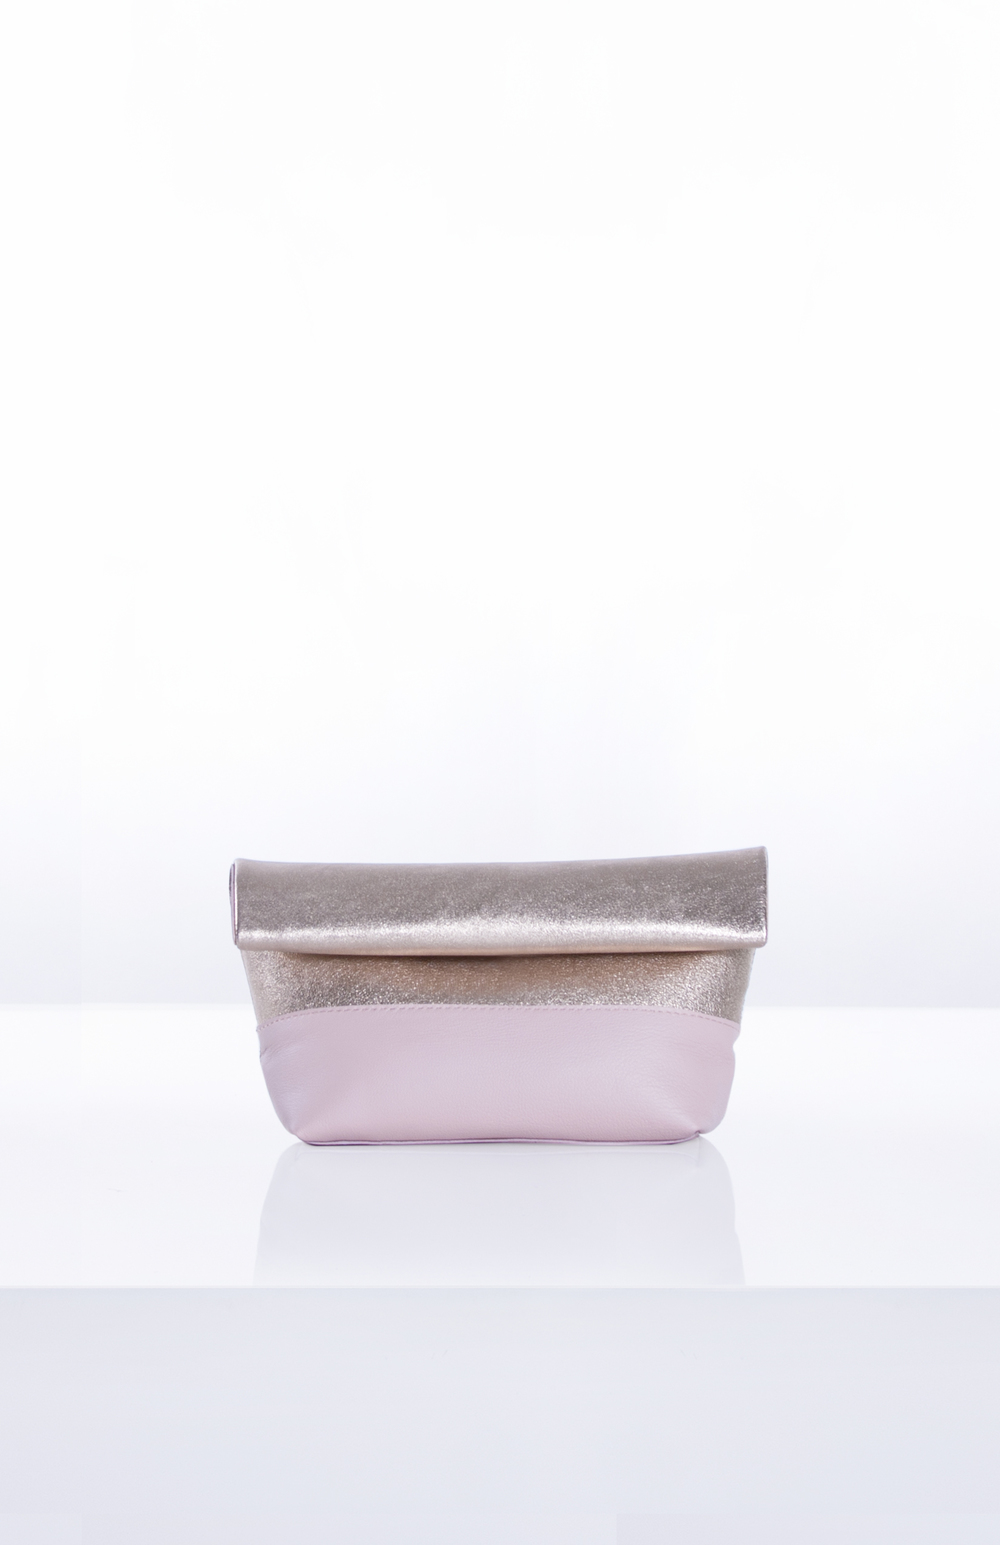 LUNA ROLLDOWN CLUTCH- Gold + Blush